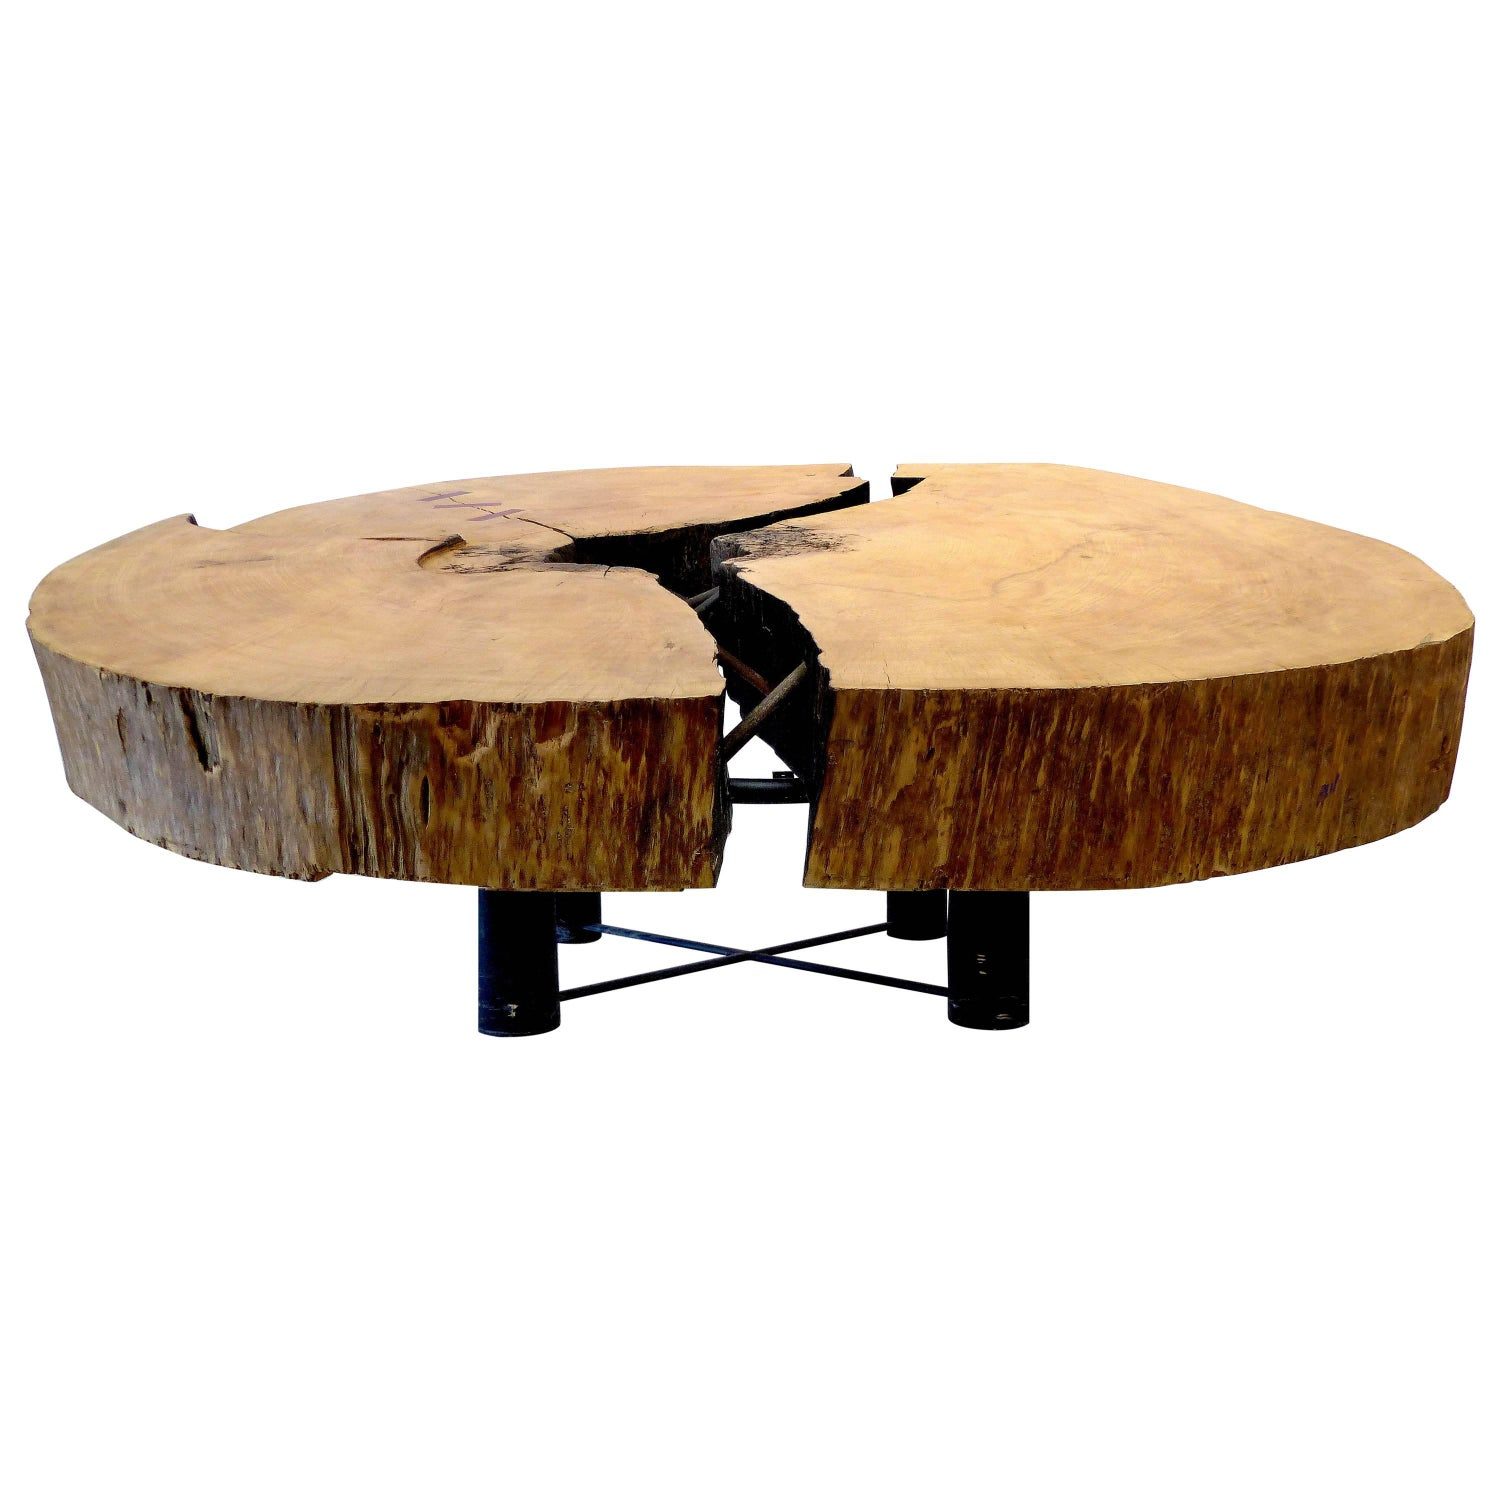 Michael taylor cyprus tree trunk dining table at 1stdibs - Monumental Brazilian Amazon Mirindiba Wood Tree Trunk 2016 Sculpture Table Base For Sale At 1stdibs